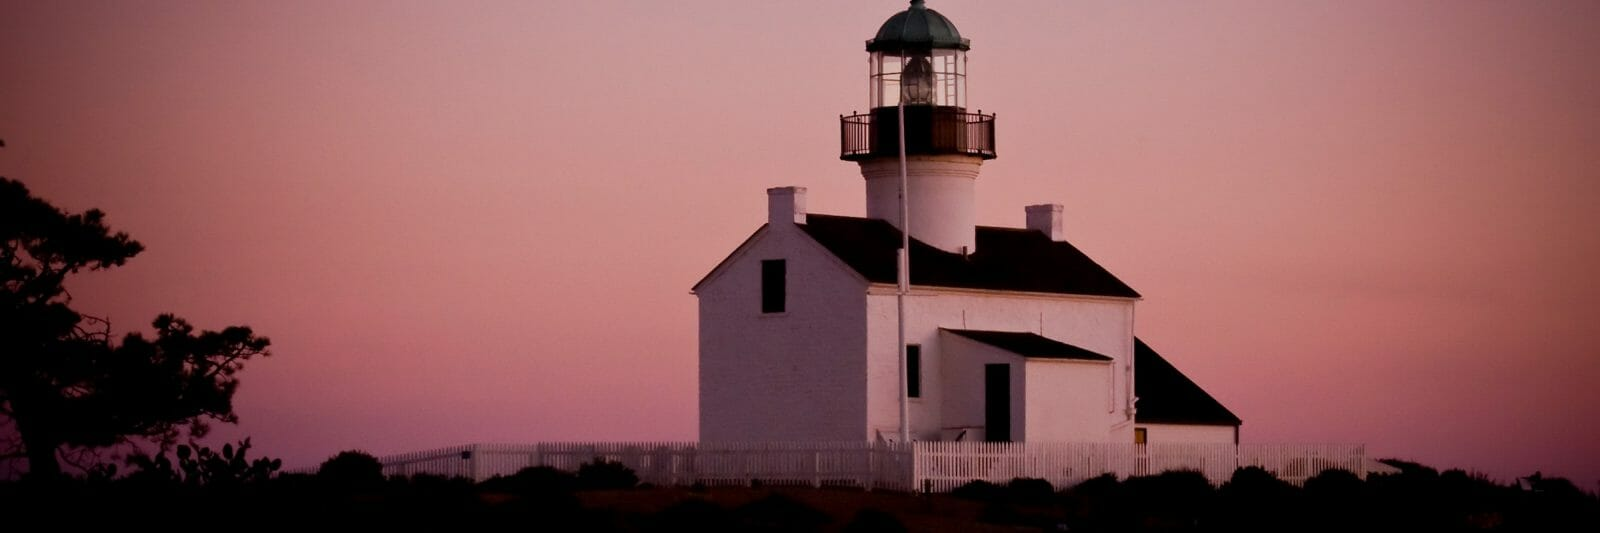 At dusk there is an eerie glow coming off of the old Point Loma lighthouse in San Diego, CA